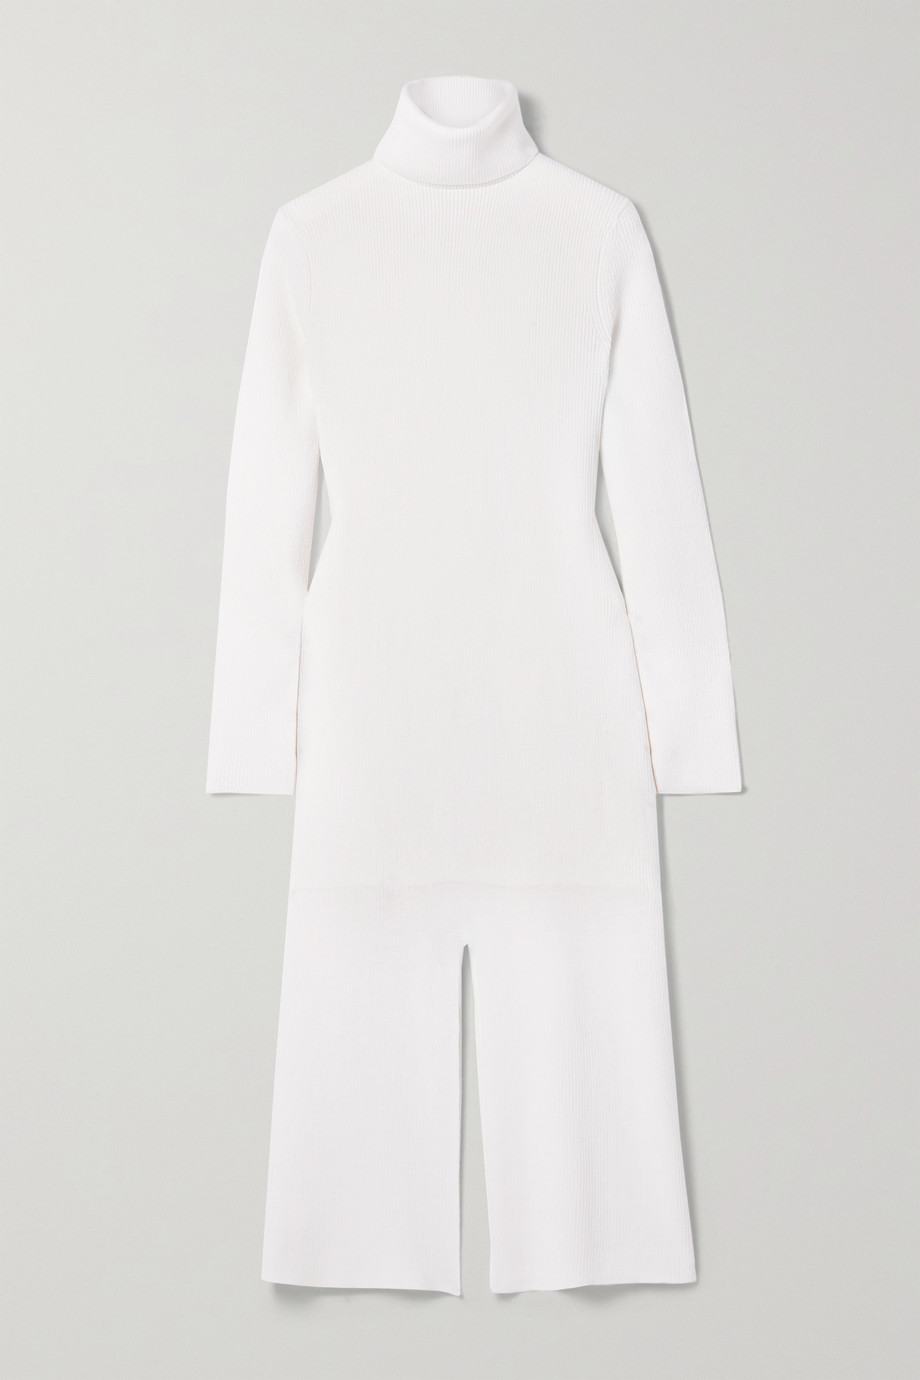 Tibi Flo ribbed wool-blend turtleneck midi dress